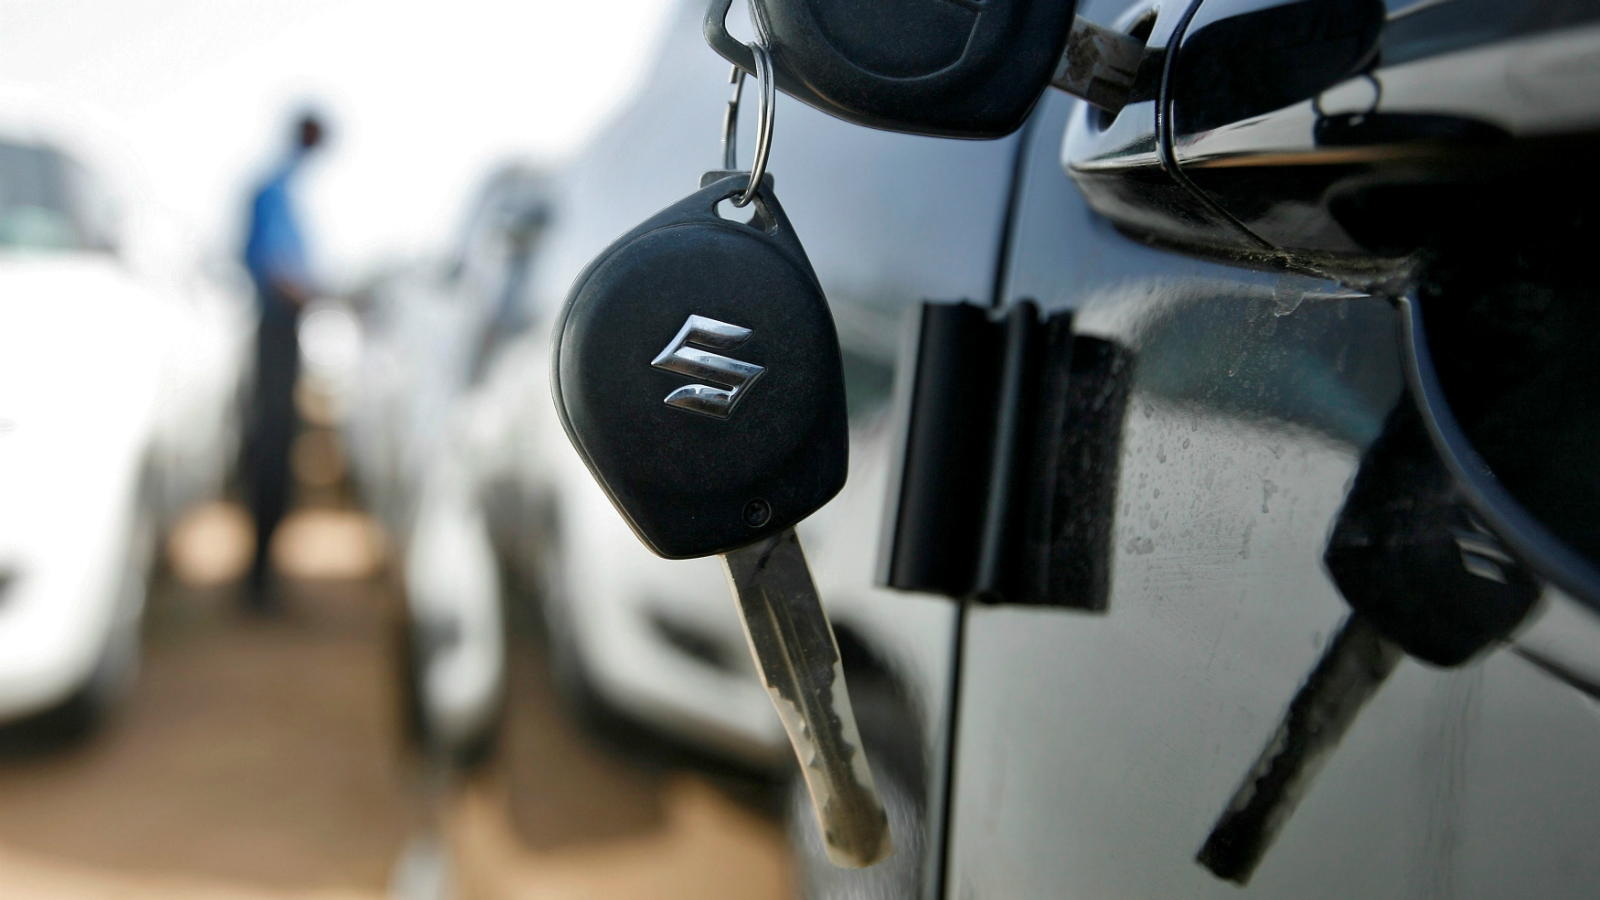 Keys hang from the door of a Maruti Suzuki Swift car at its stockyard on the outskirts of the western Indian city of Ahmedabad.